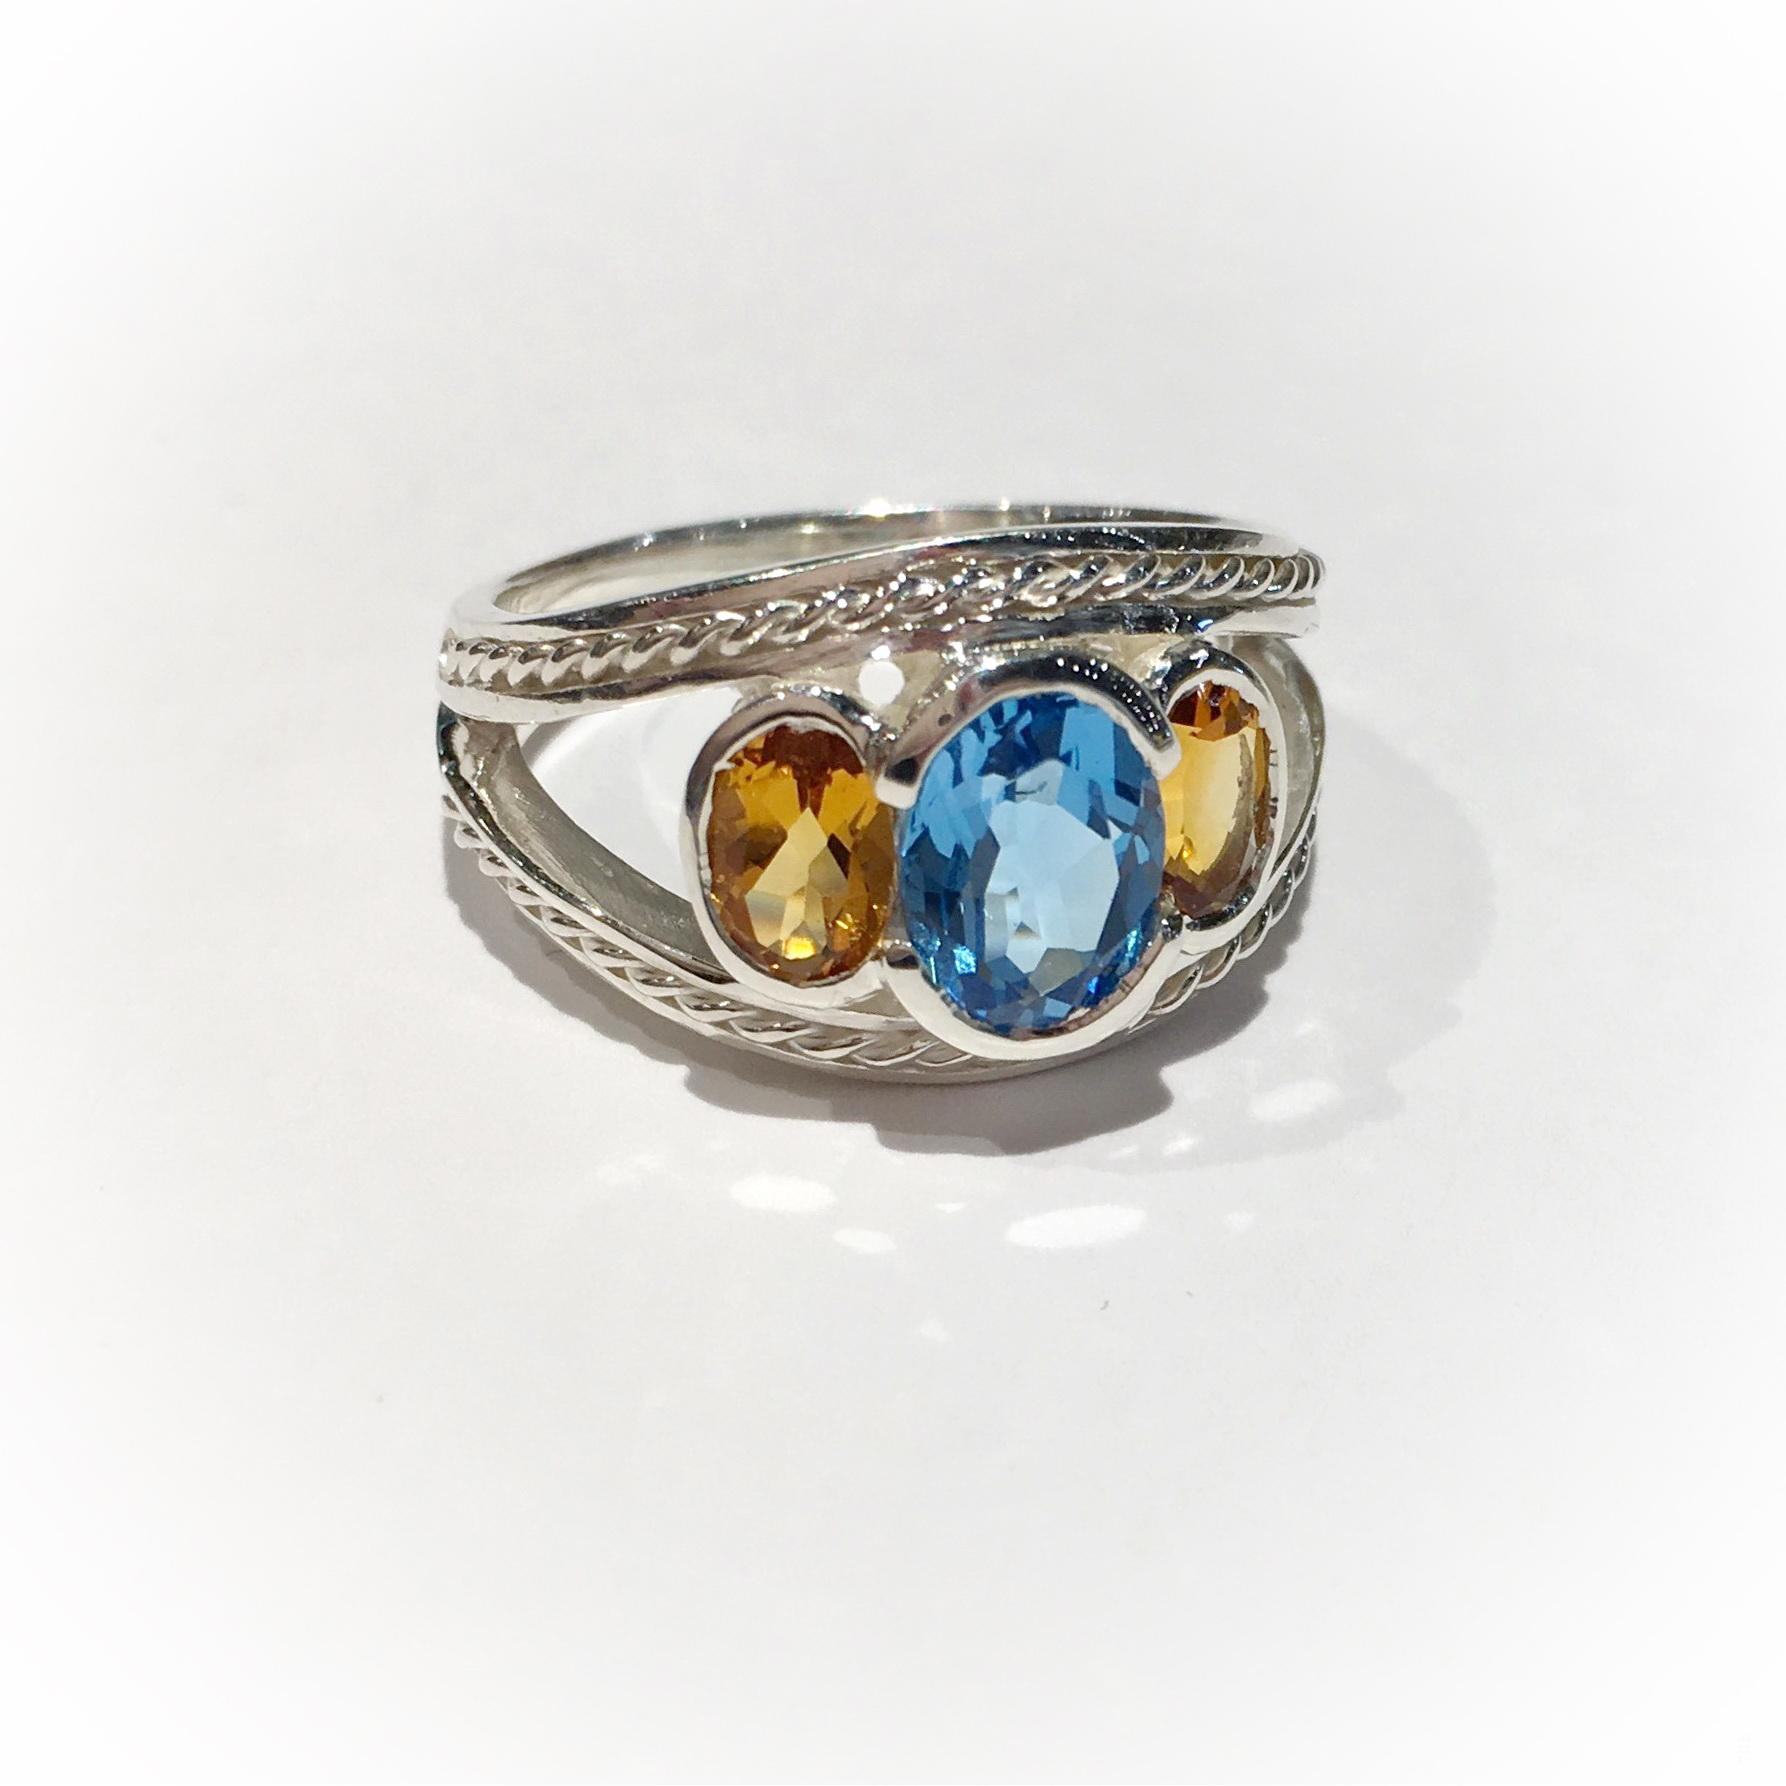 Open Silver Byzantine Ring with Blue Topaz and Citrine by Kevin Cremin at The Avenue Gallery, a contemporary fine art gallery in Victoria, BC, Canada.